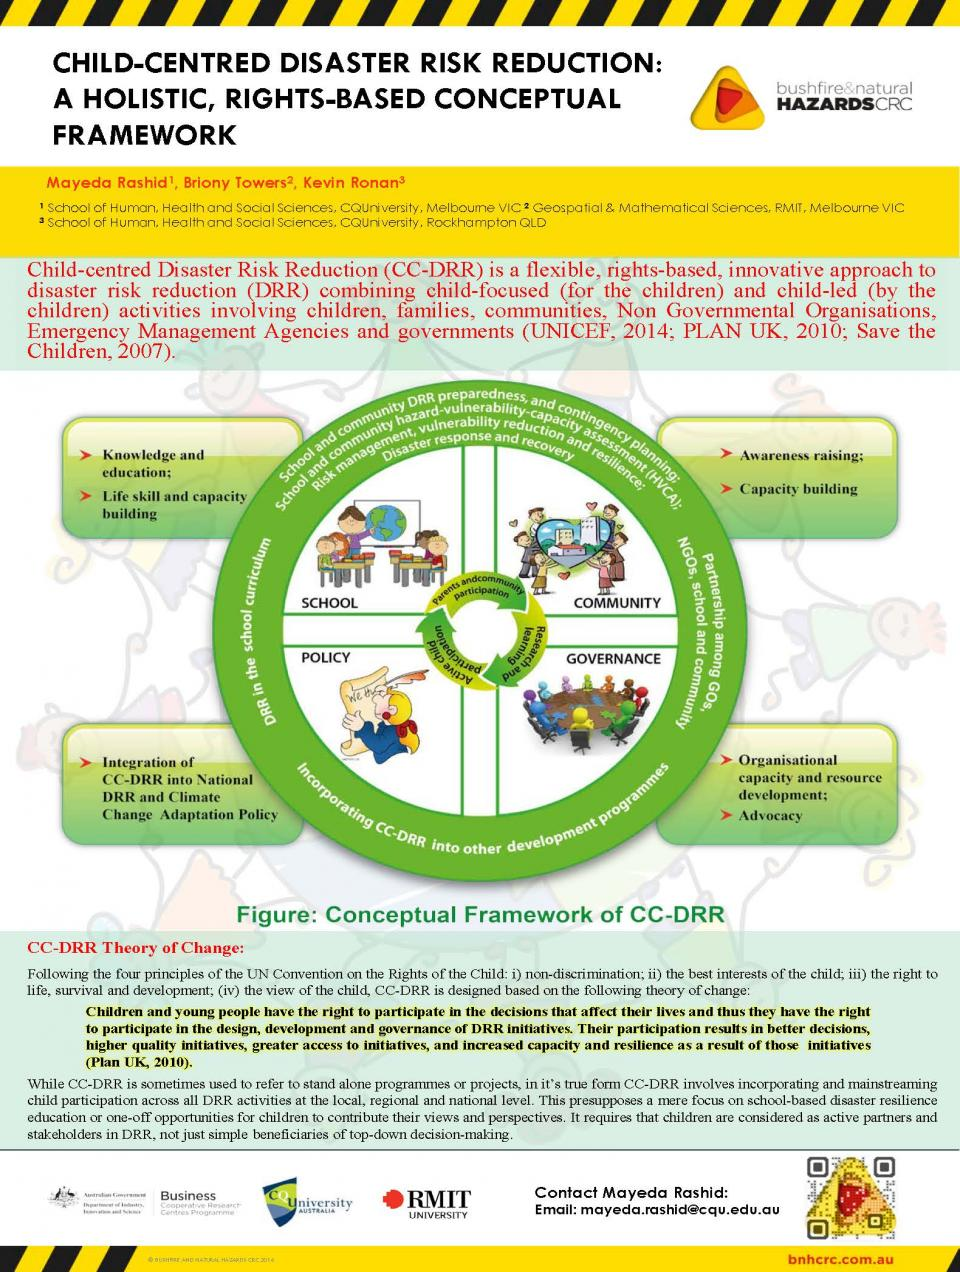 Child-centred disaster risk reduction: a holistic, rights-based conceptual framework